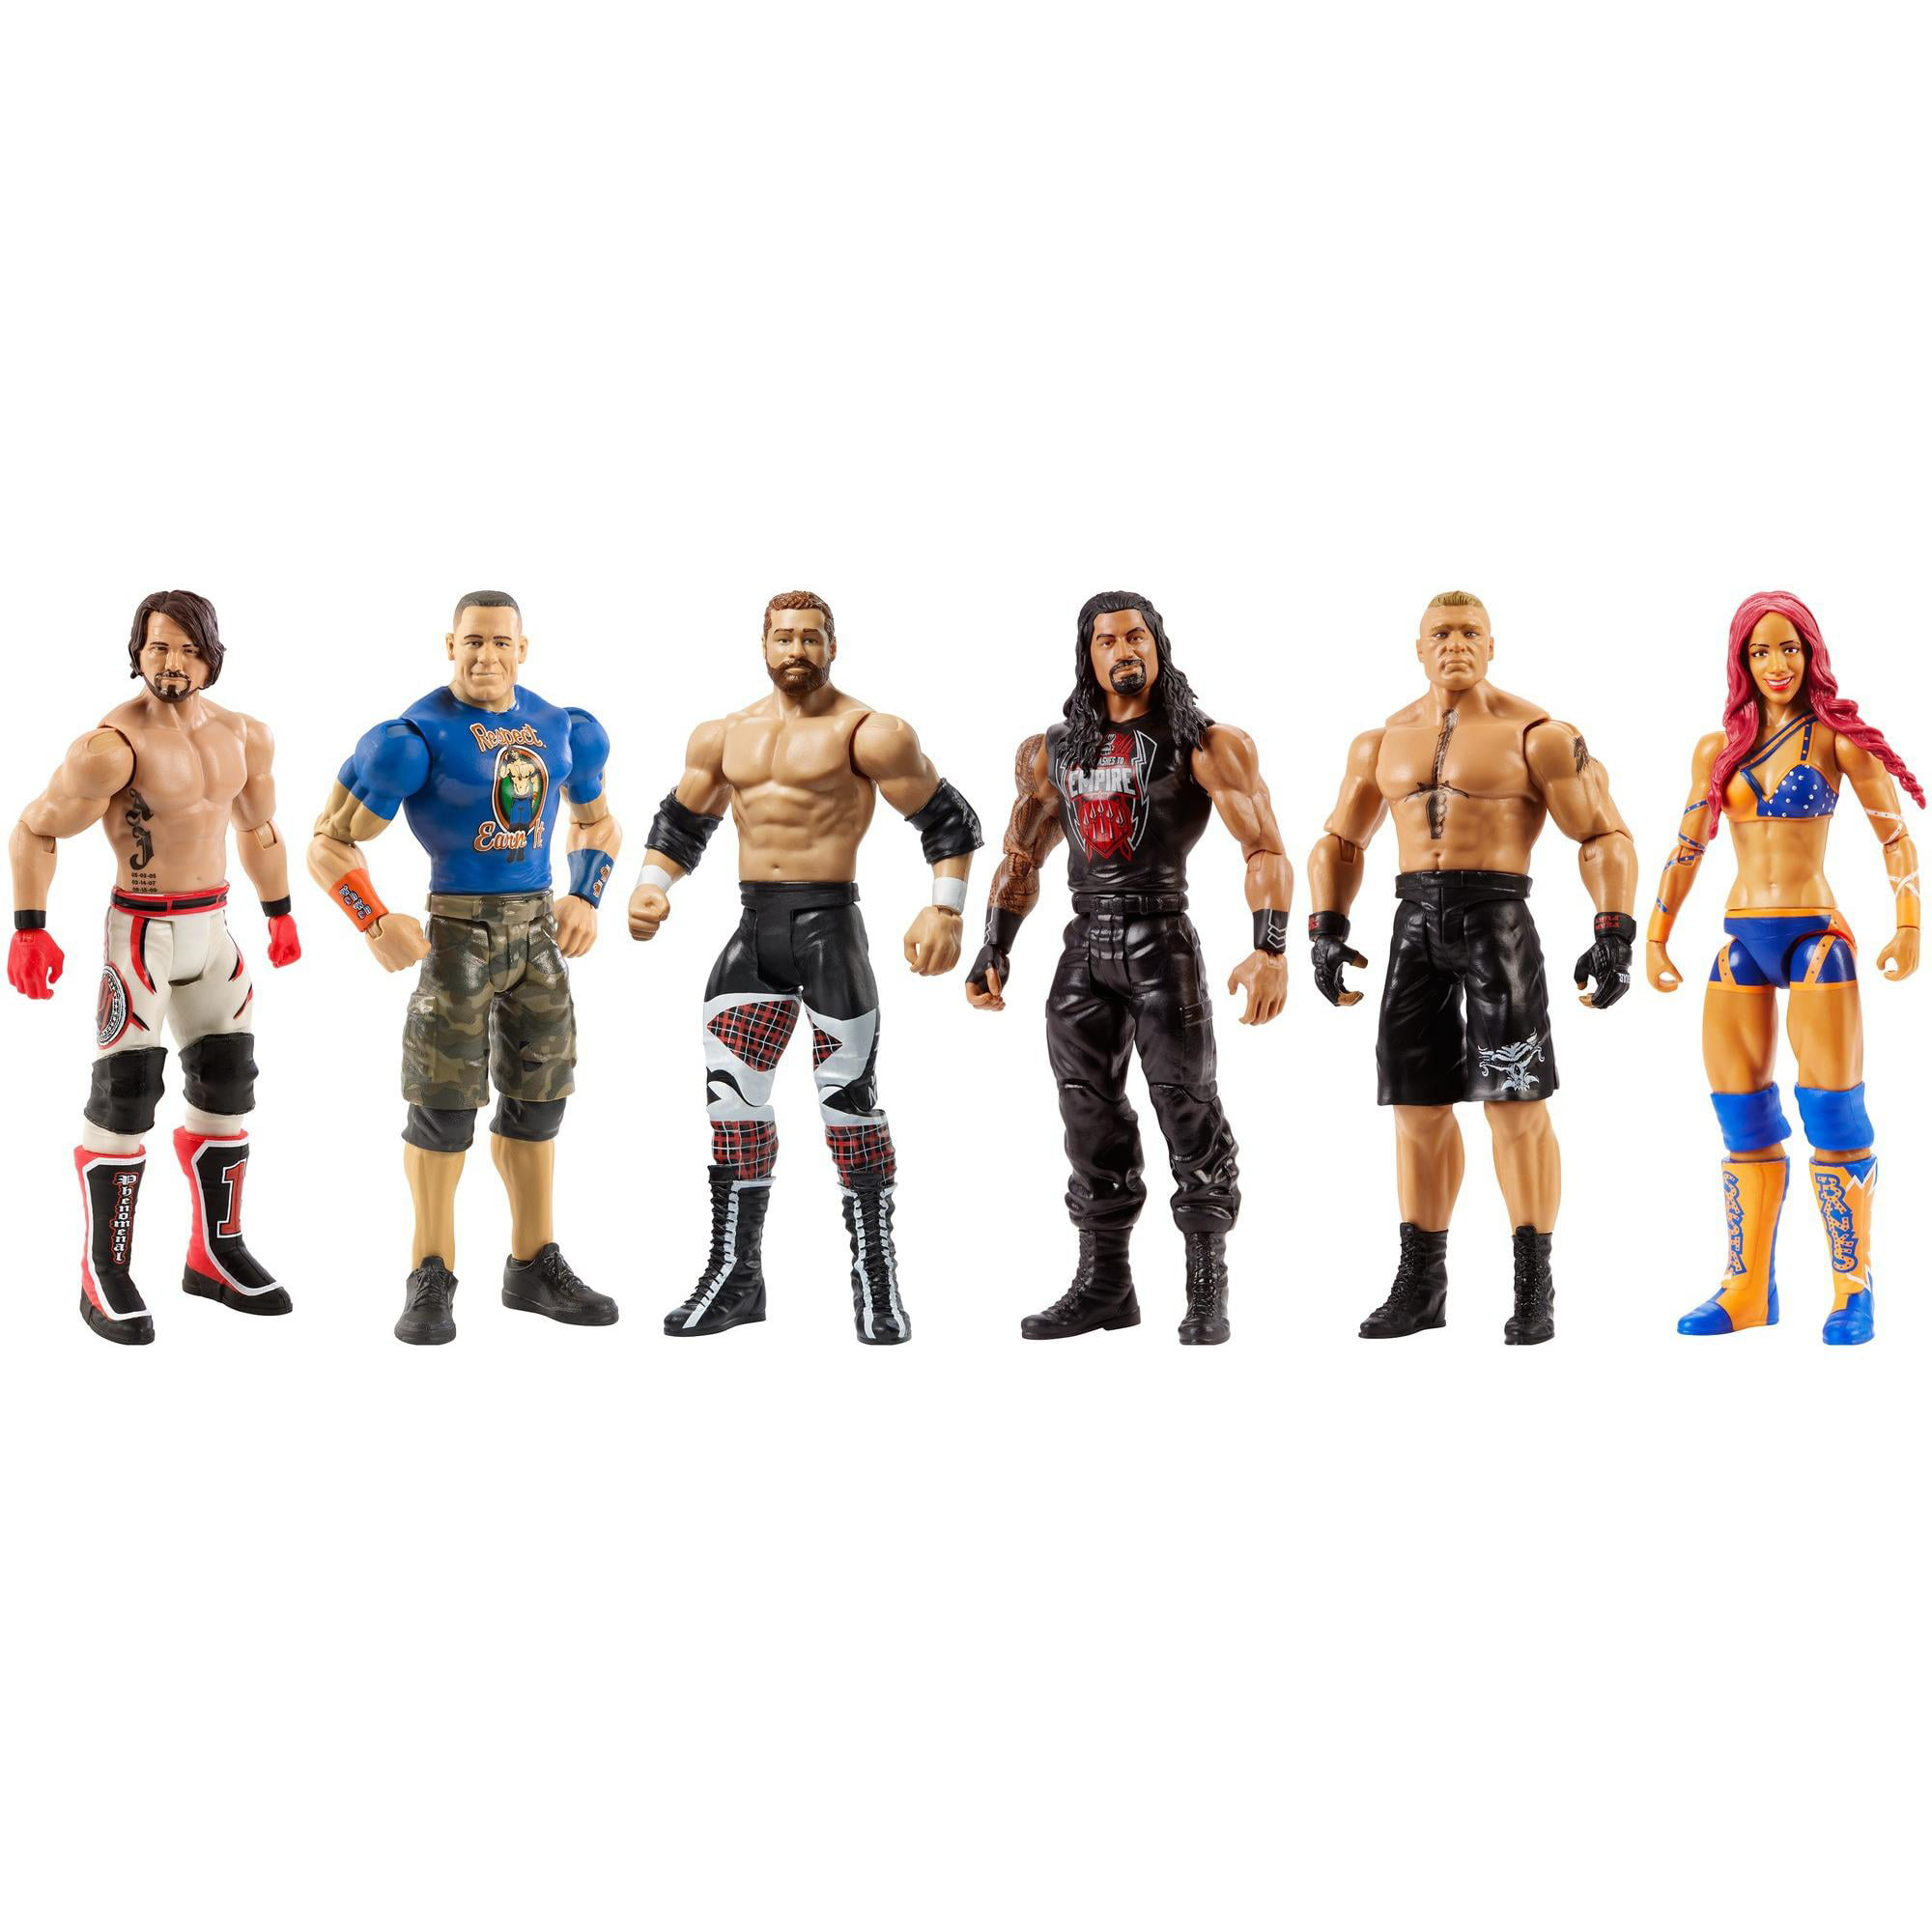 WWE Core Action Figures by Mattel